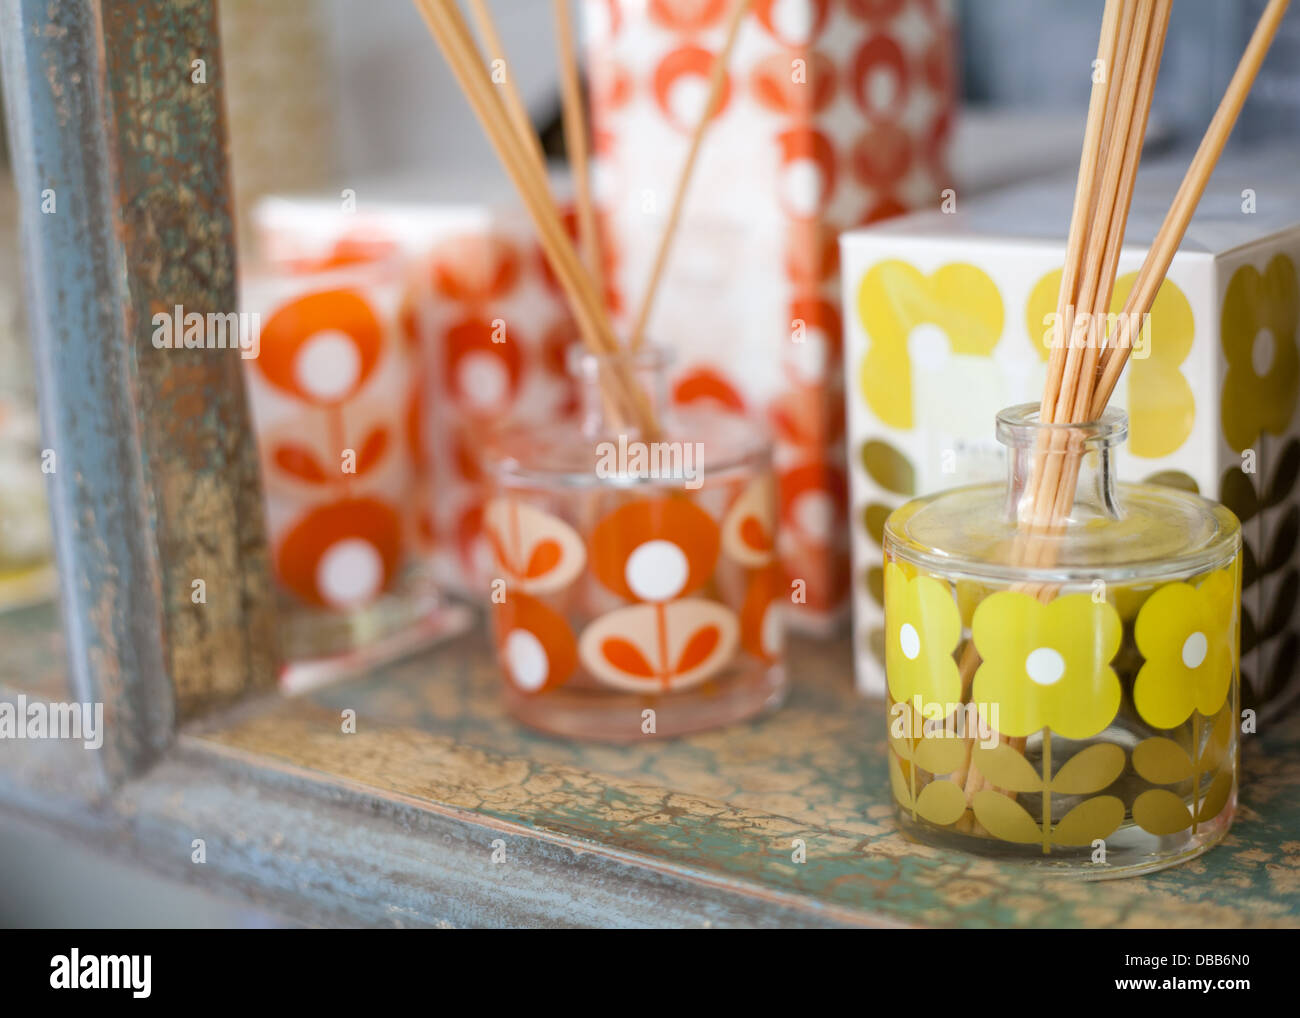 sent diffusers in a shop display - Stock Image